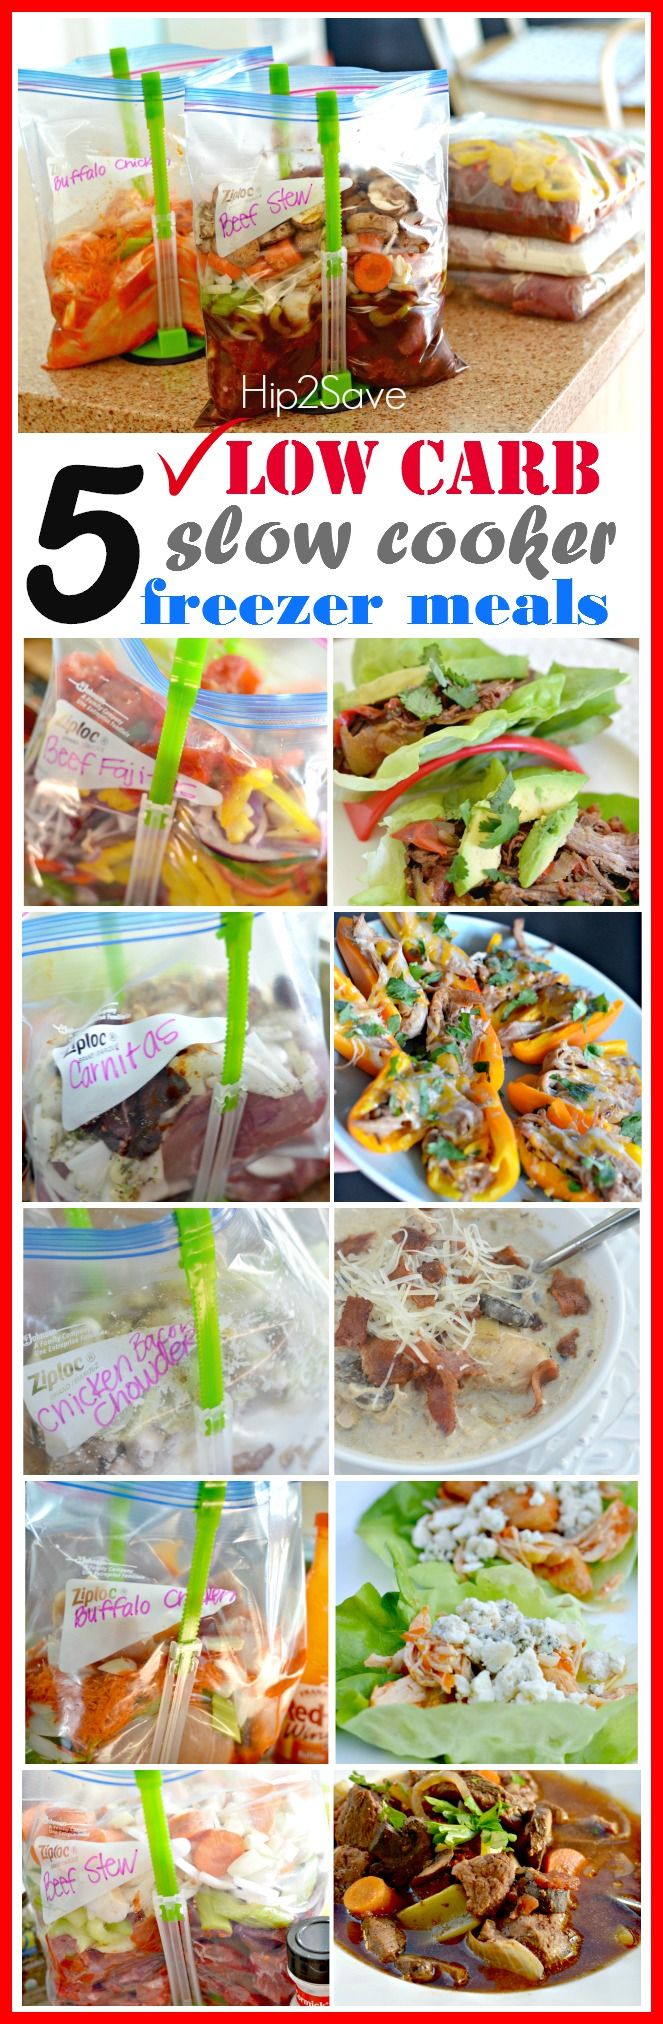 Looking to save time and effort? Here are 5 low carb slow cooker freezer meals that will make your life easier. When you visit the website there's free printable grocery list to make it easy for you when you go shopping for the ingredients. For more ideas on meals and ways to save visit Hip2Save.com